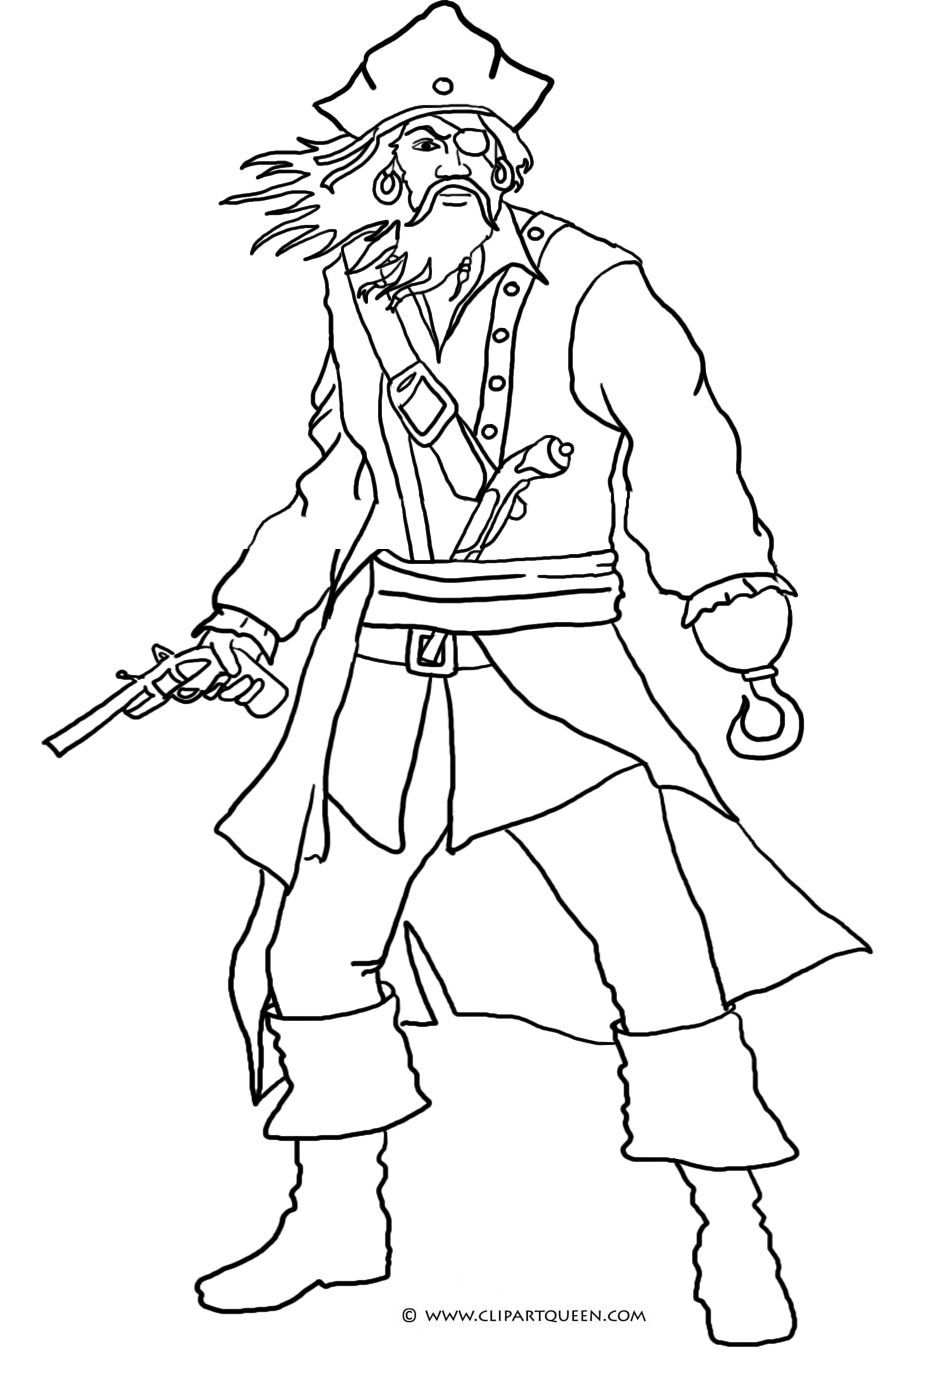 dulemba pirate coloring pages - photo#33